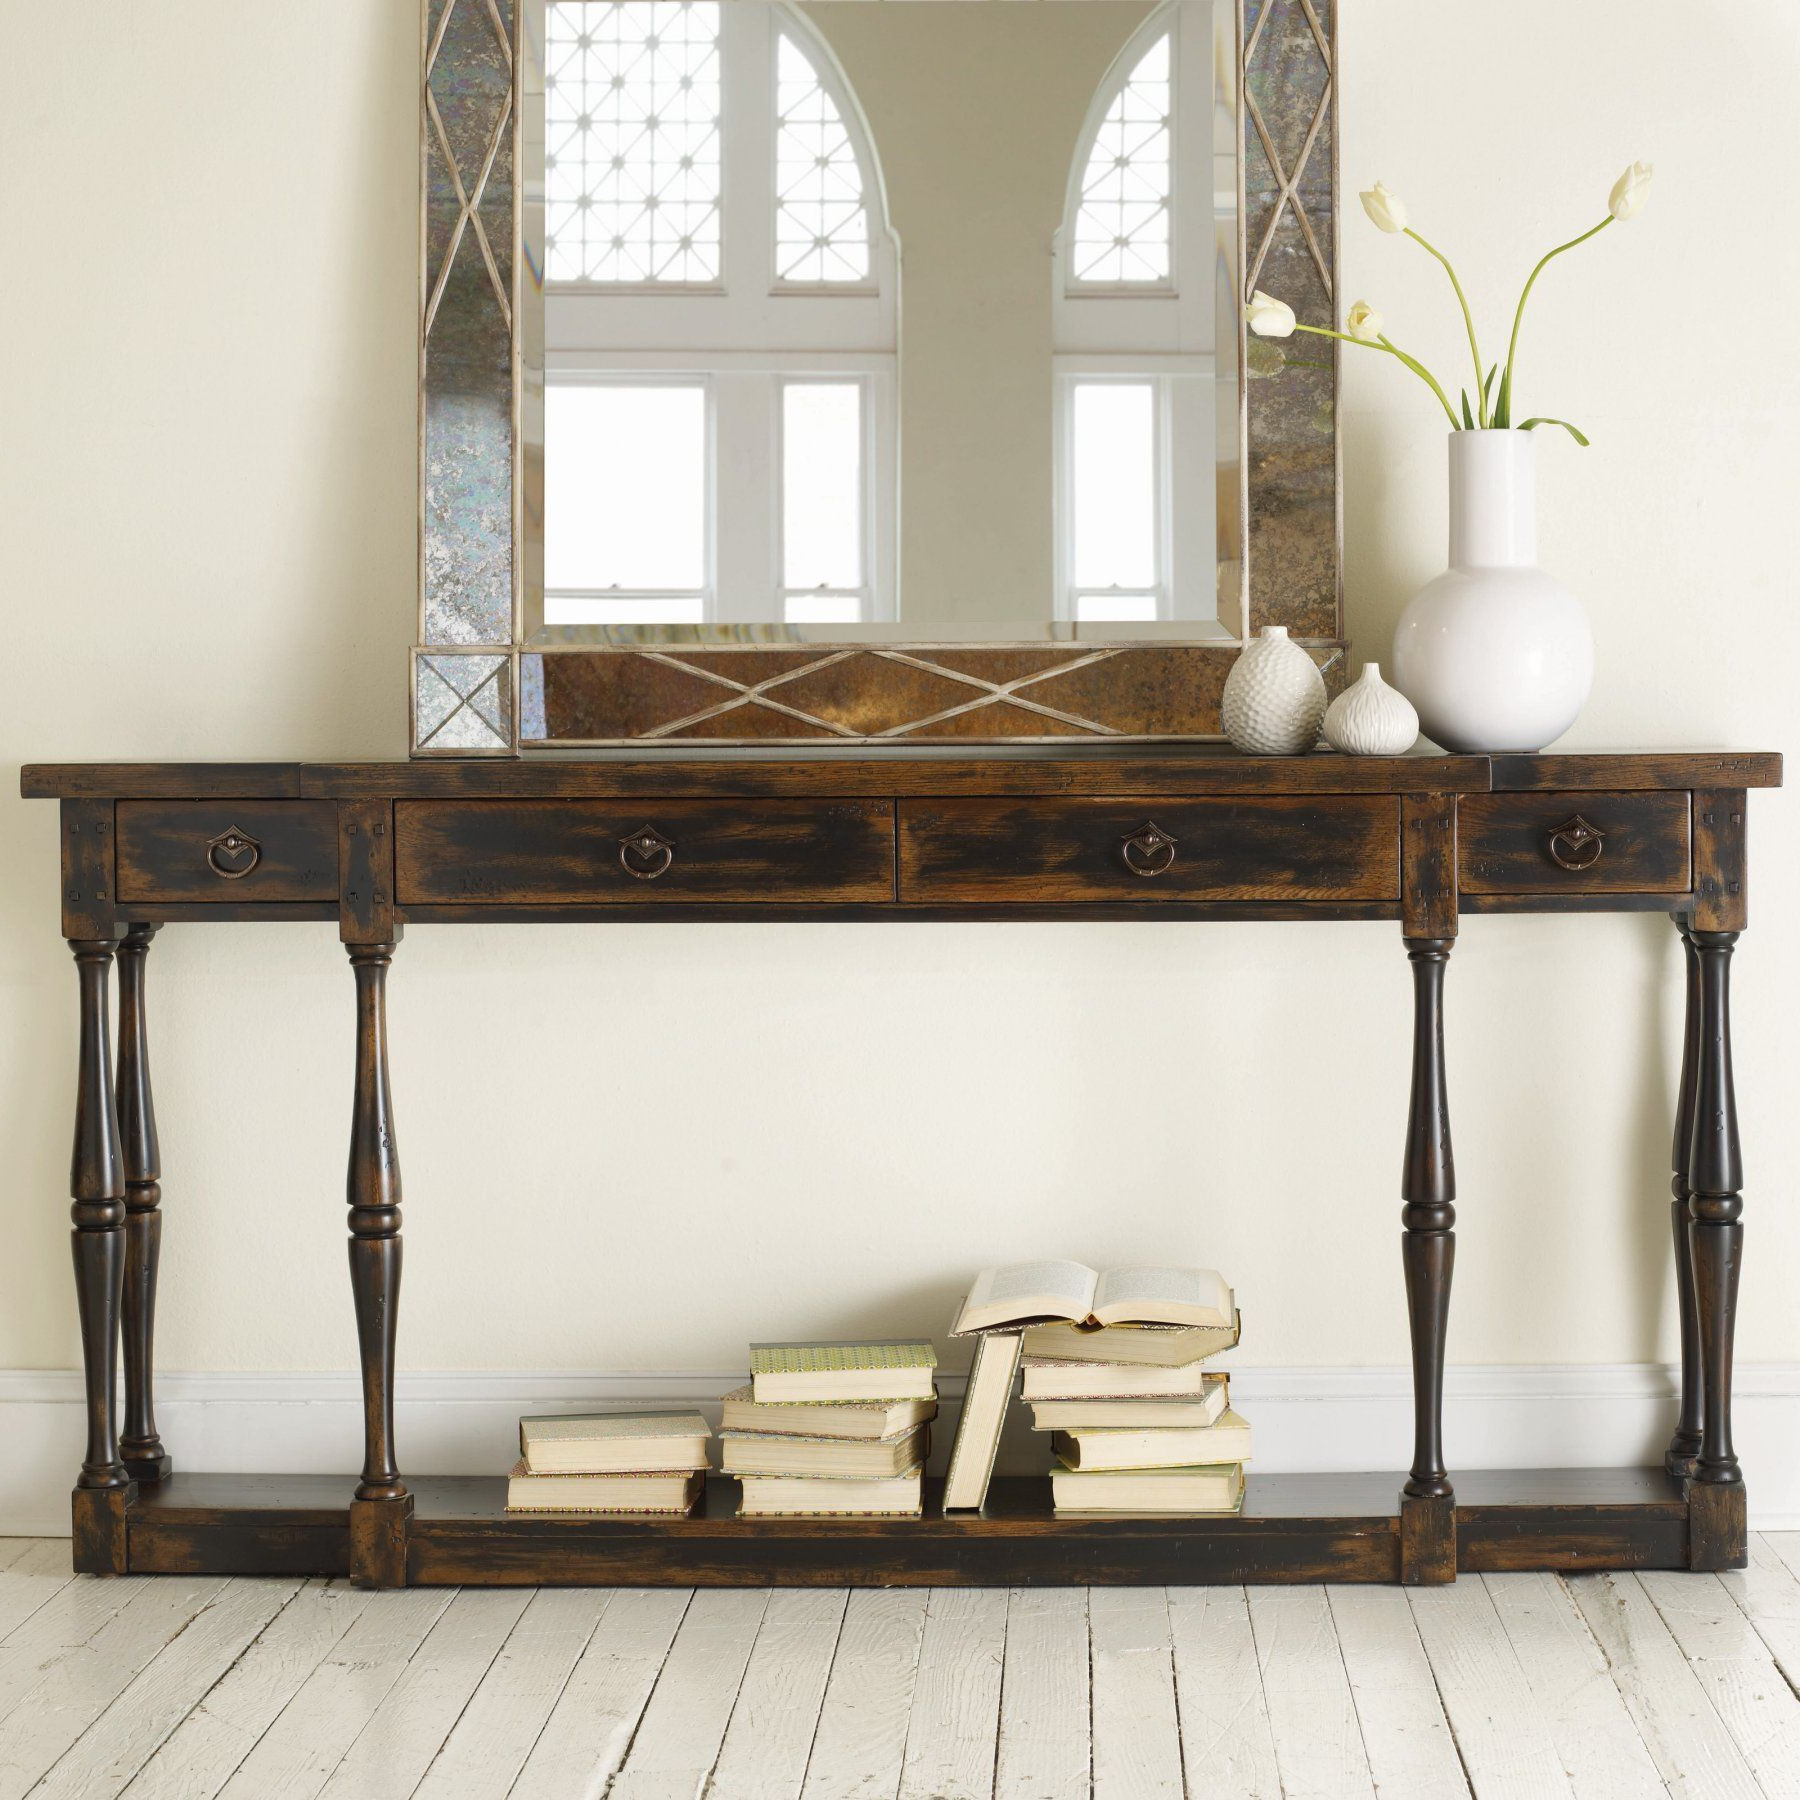 Hooker Furniture Ebony 4 Drawer Thin Console – 3005 85001 Inside Ventana Display Console Tables (View 10 of 20)